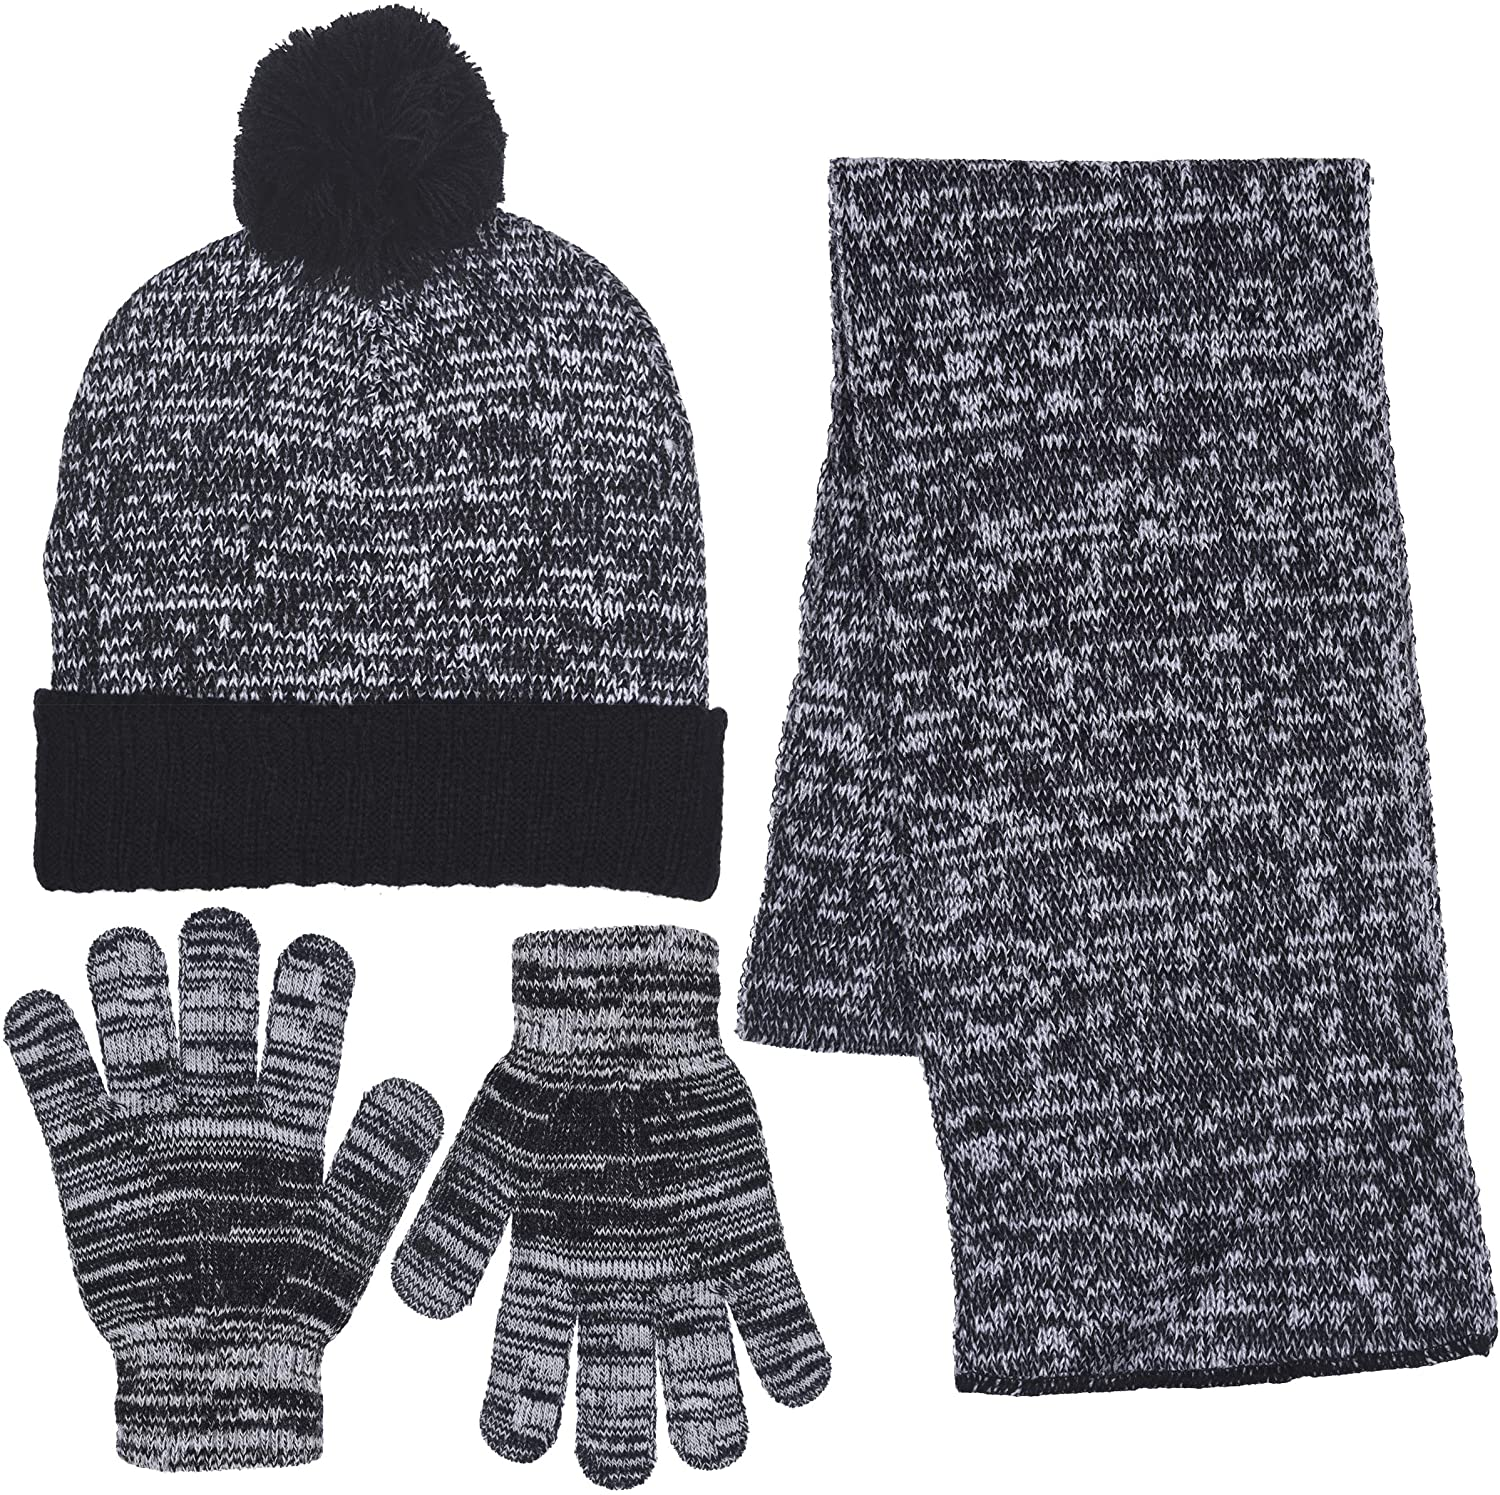 Girls Knit Pom Beanie Scarf & Gloves Set to Keep Warm in Winter in 4 Colors